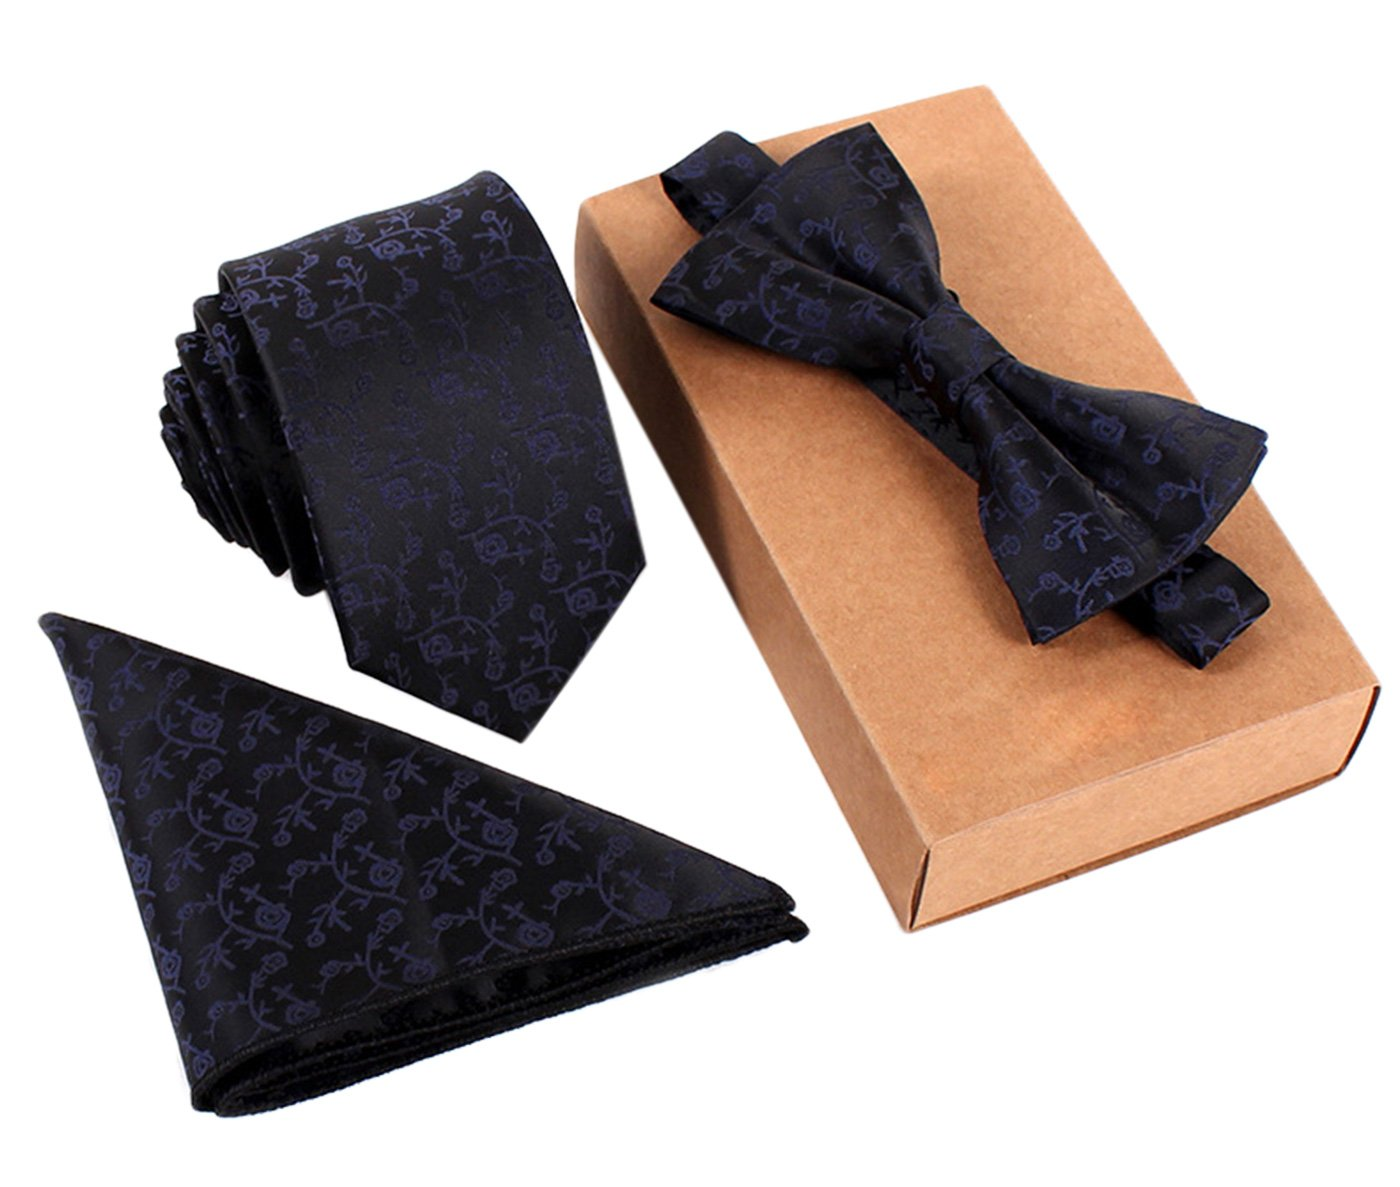 Men's Classic Restro Embroidery Necktie Bowtie Pocket Square 3pcs Set Burgundy Panegy